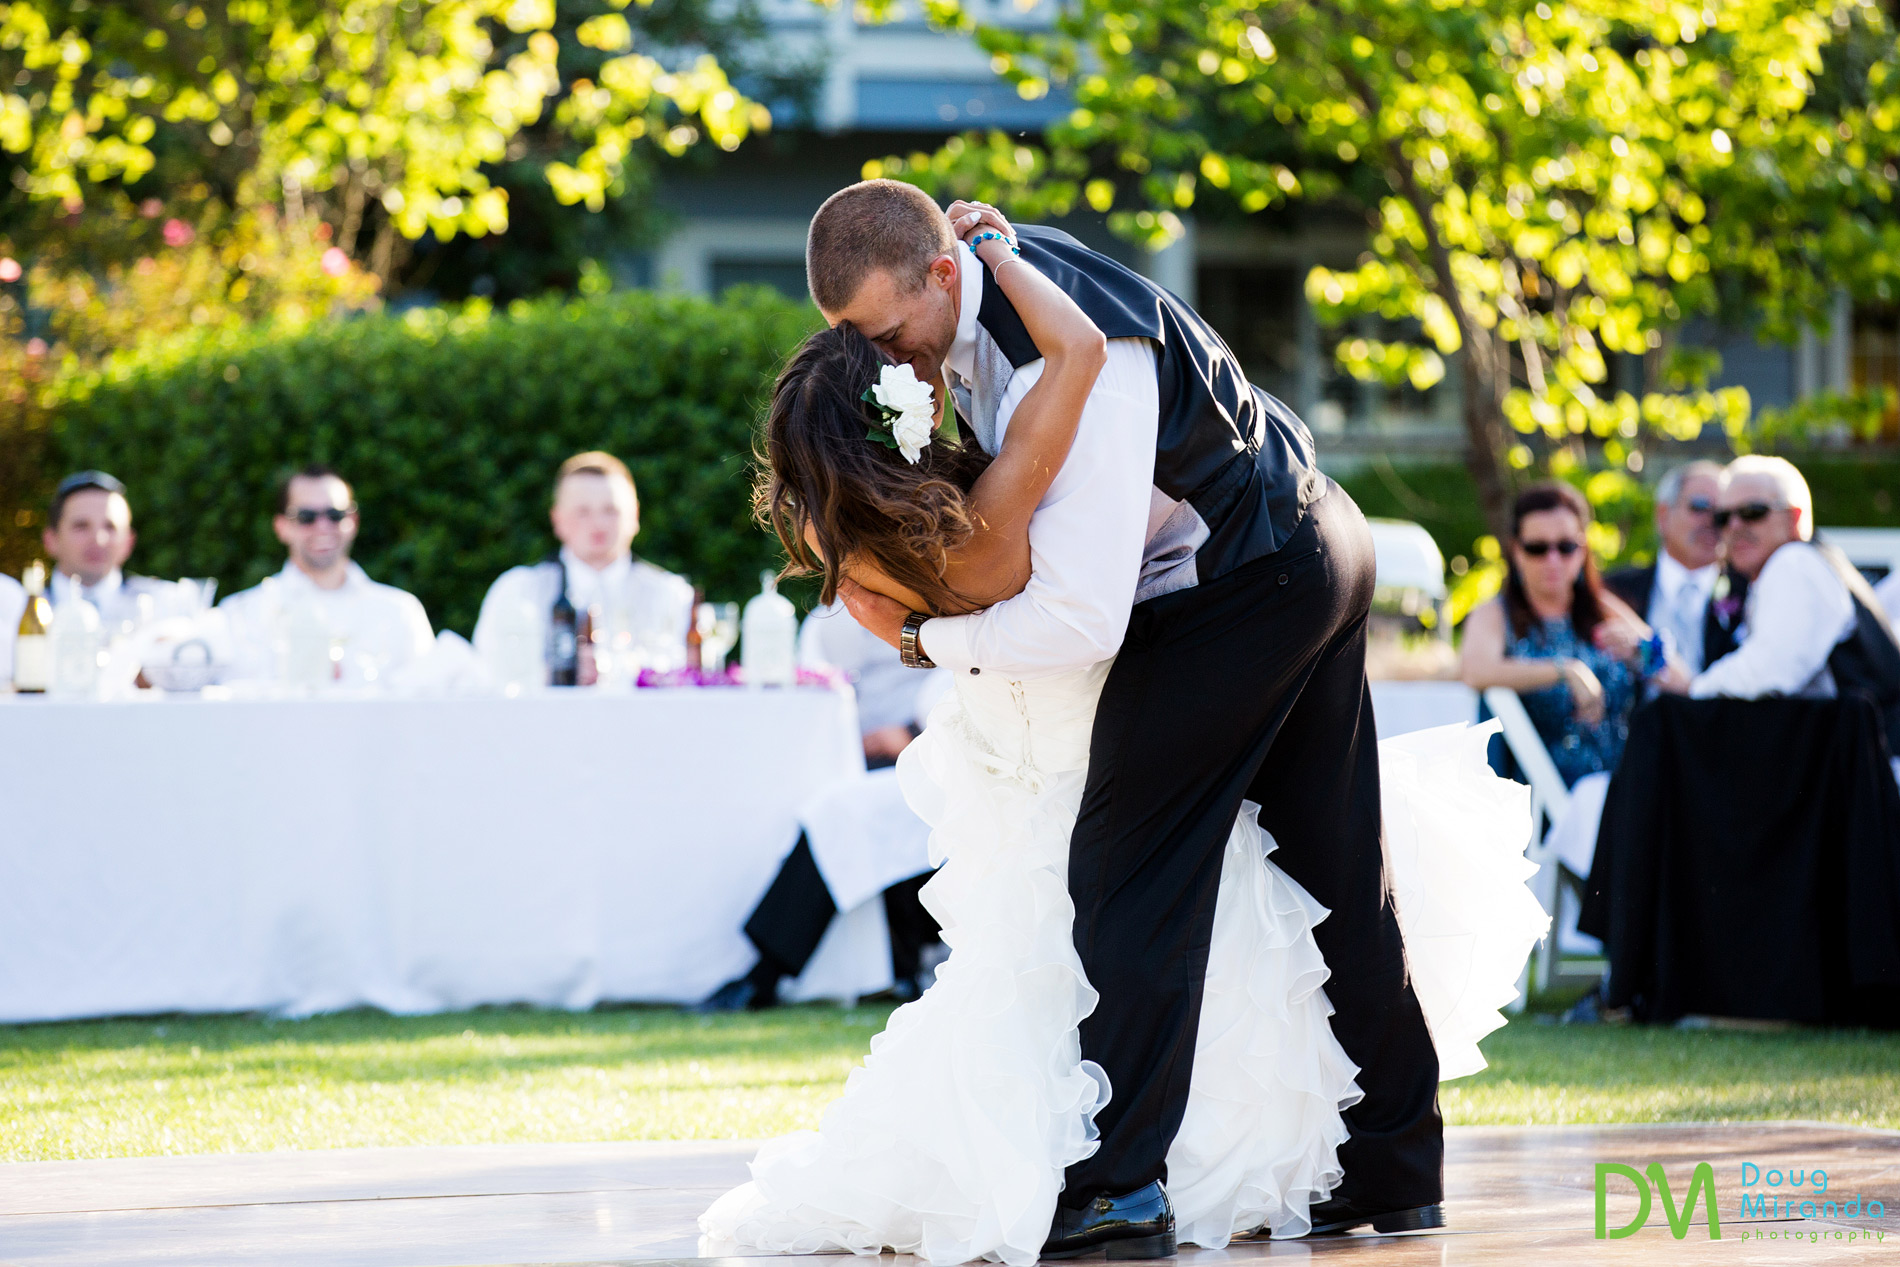 Tommy throwing in some dance moves during their first dance.